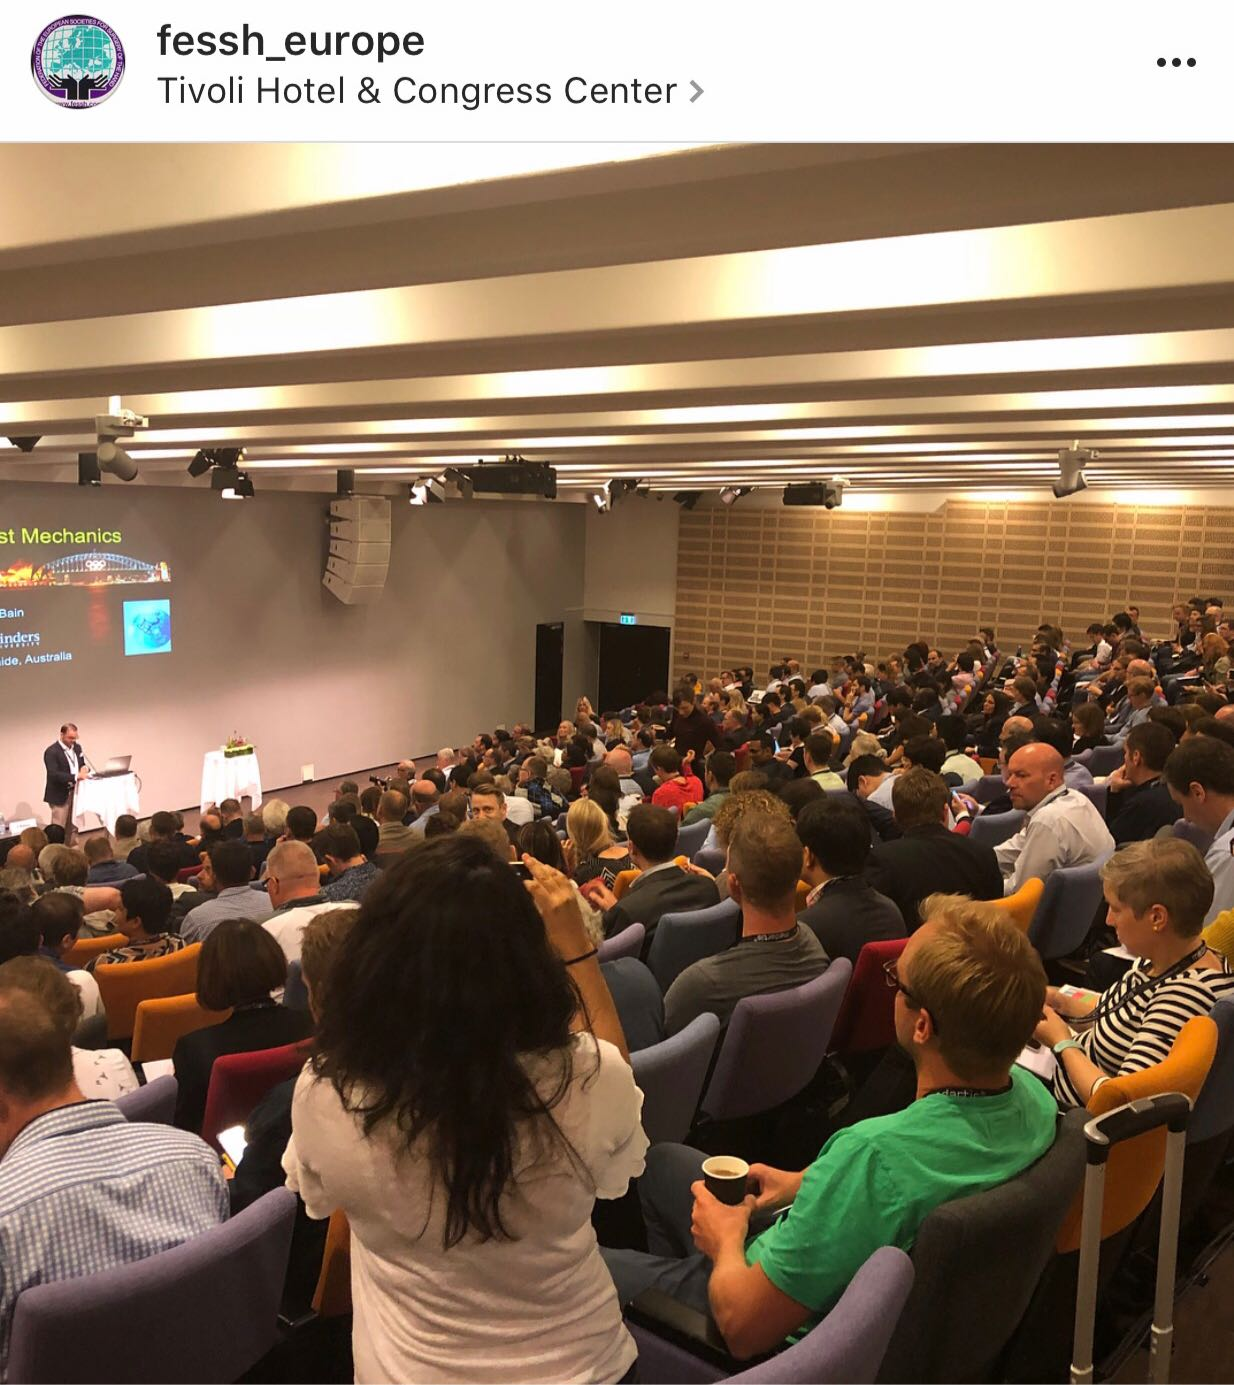 FESSH Educational Session on Wrist Instability, Copenhagen 2018